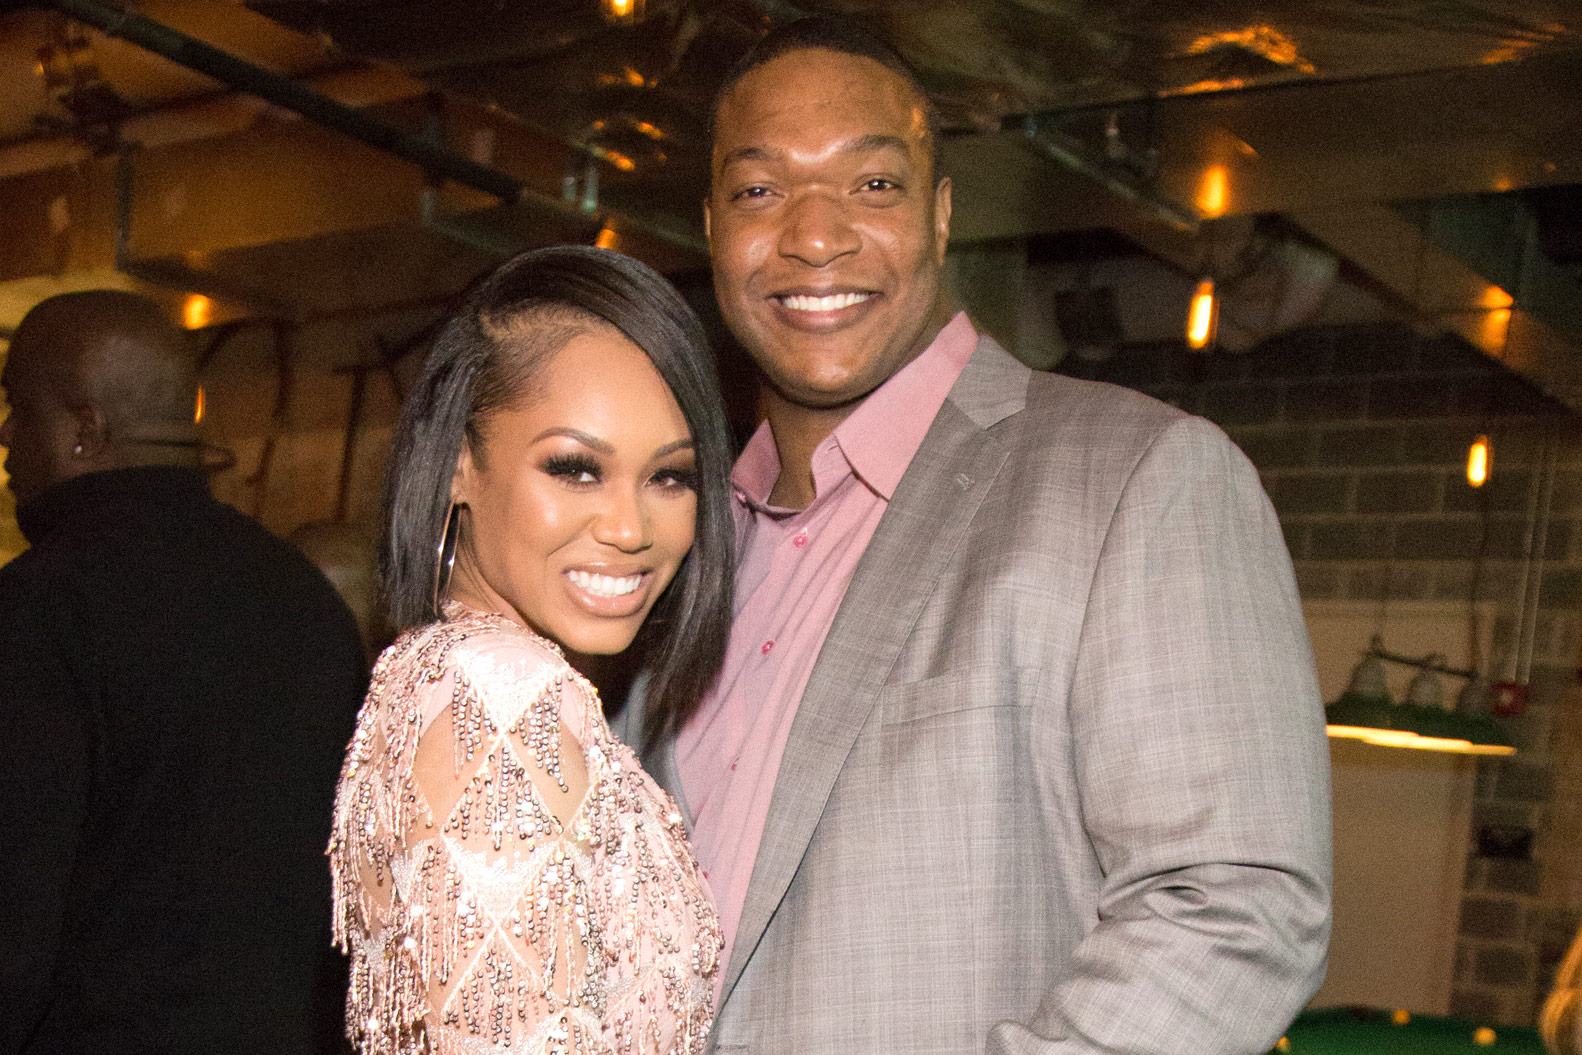 Monique Samuels with Husband Chris Samuels